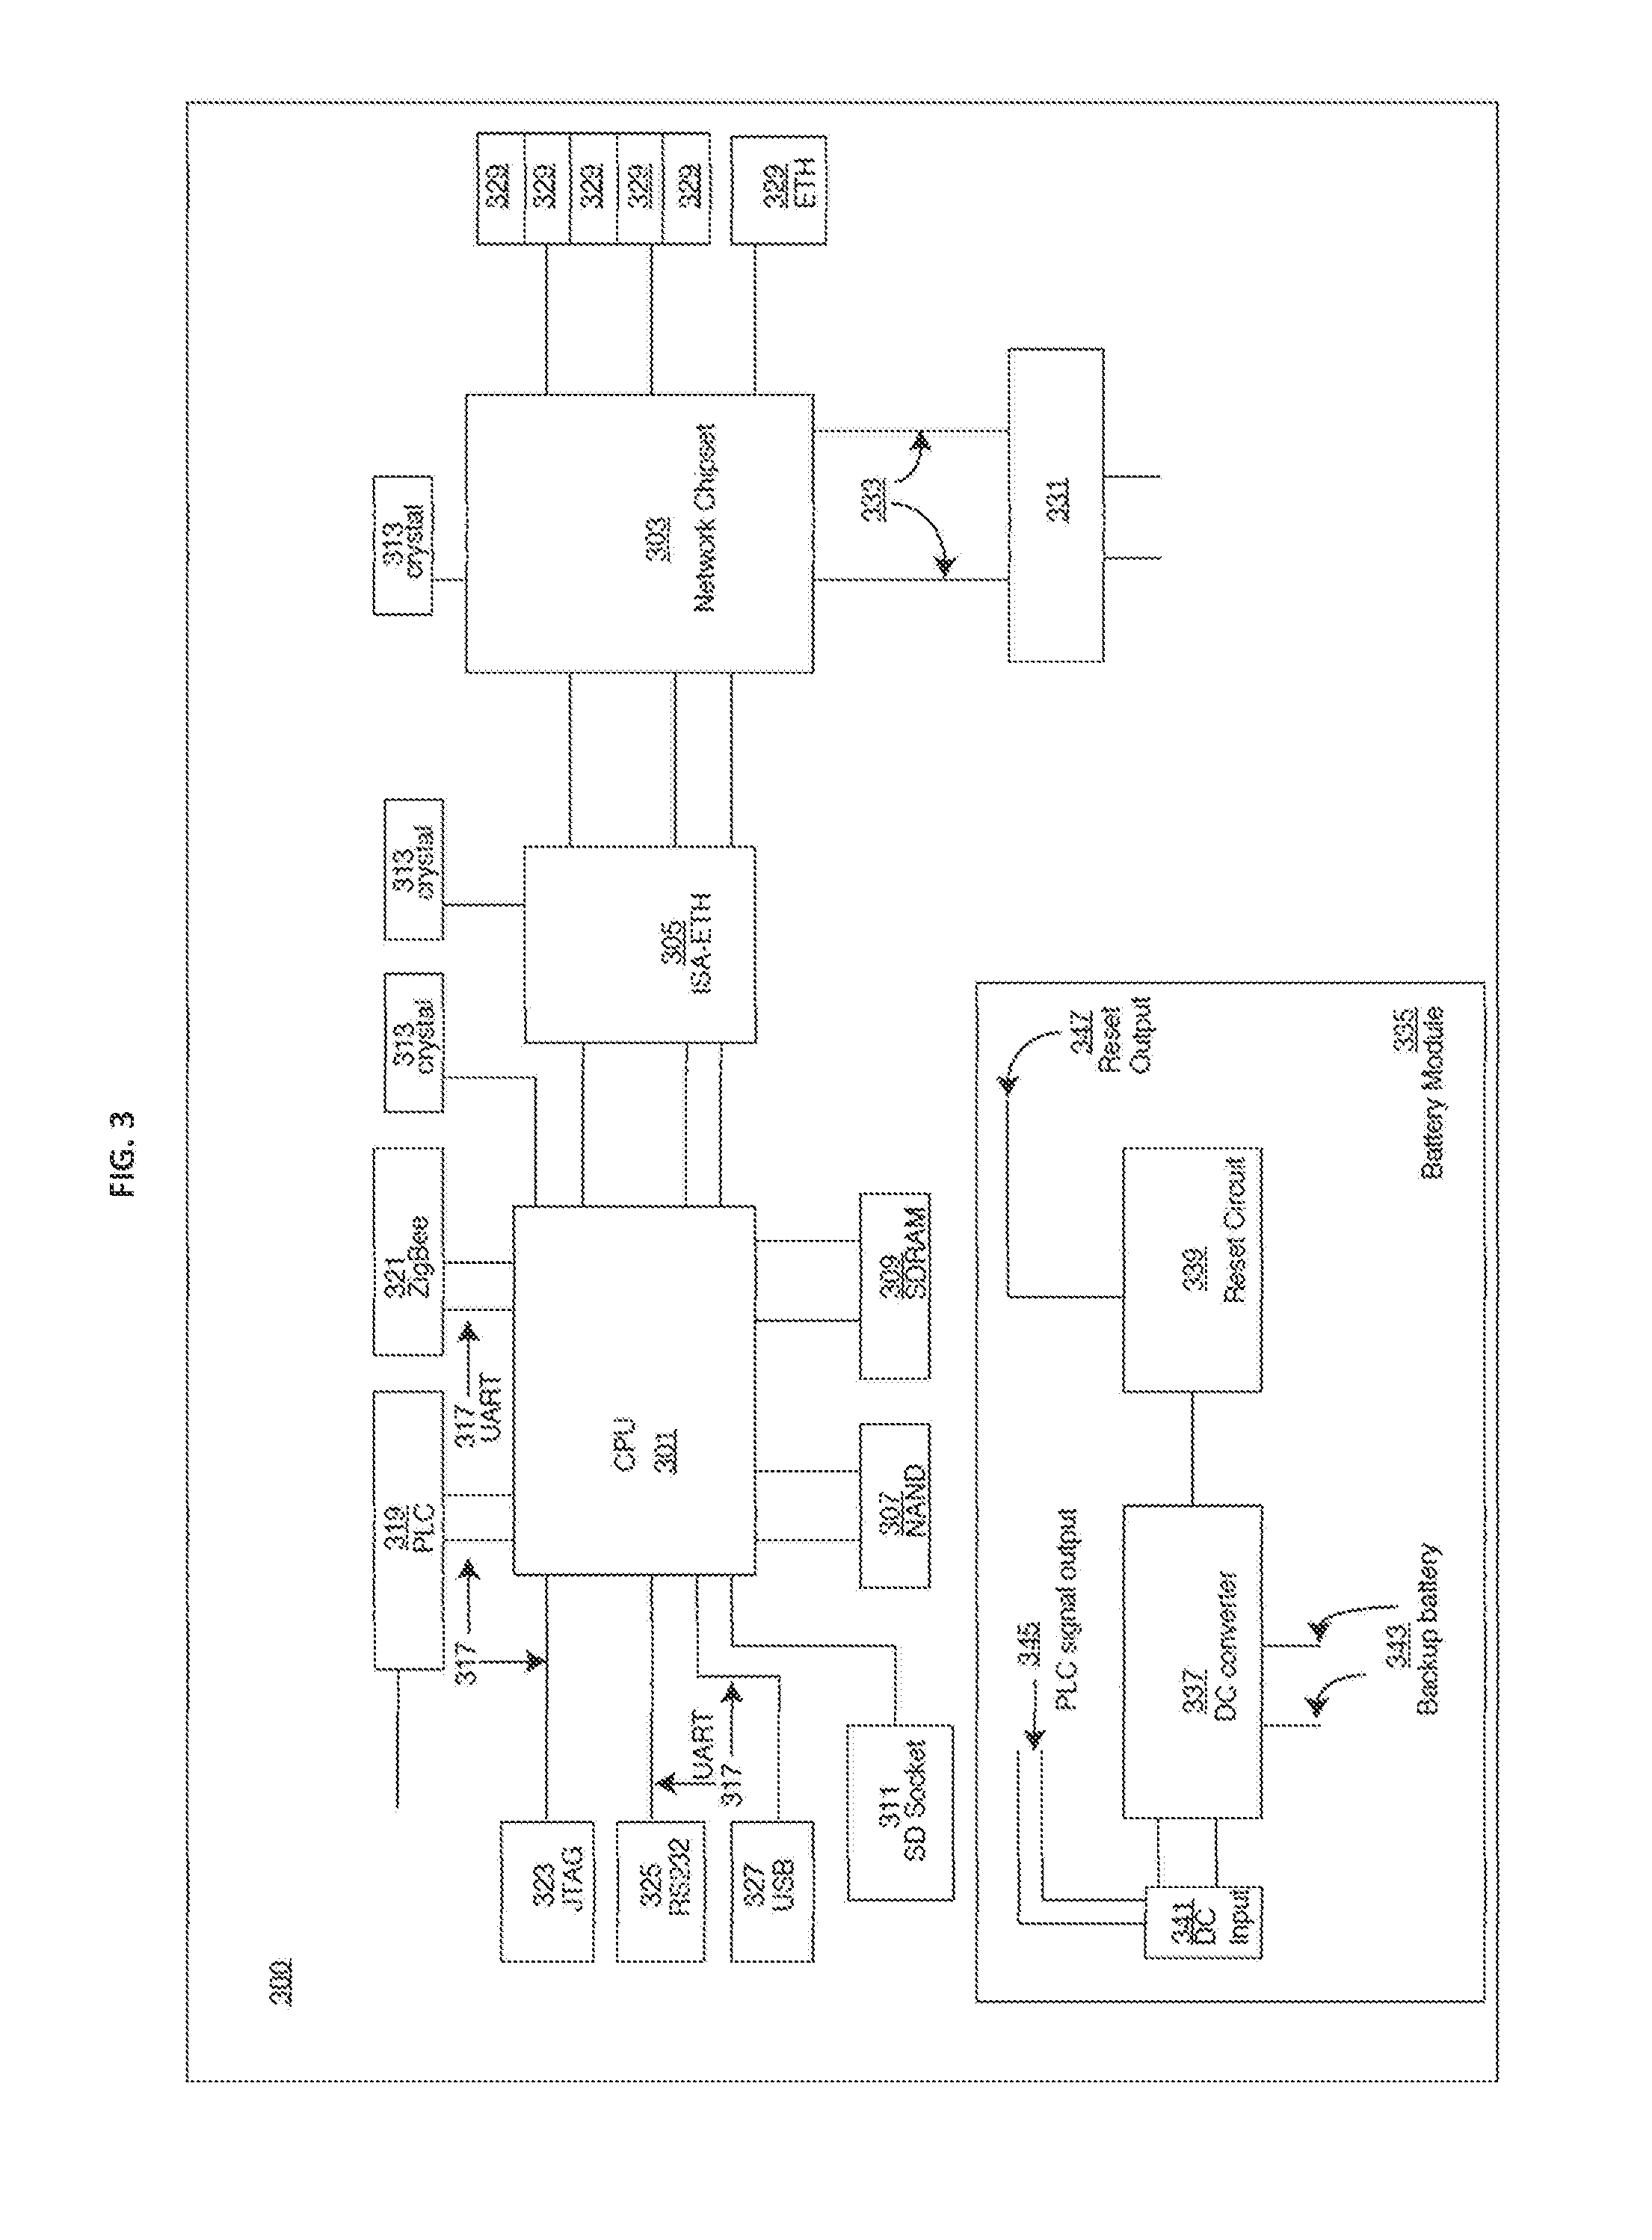 208 1 Phase Wiring Diagram 26 Images Diagrams 230 Volt 3 220 Us20120269199a1 20121025 D00003resize